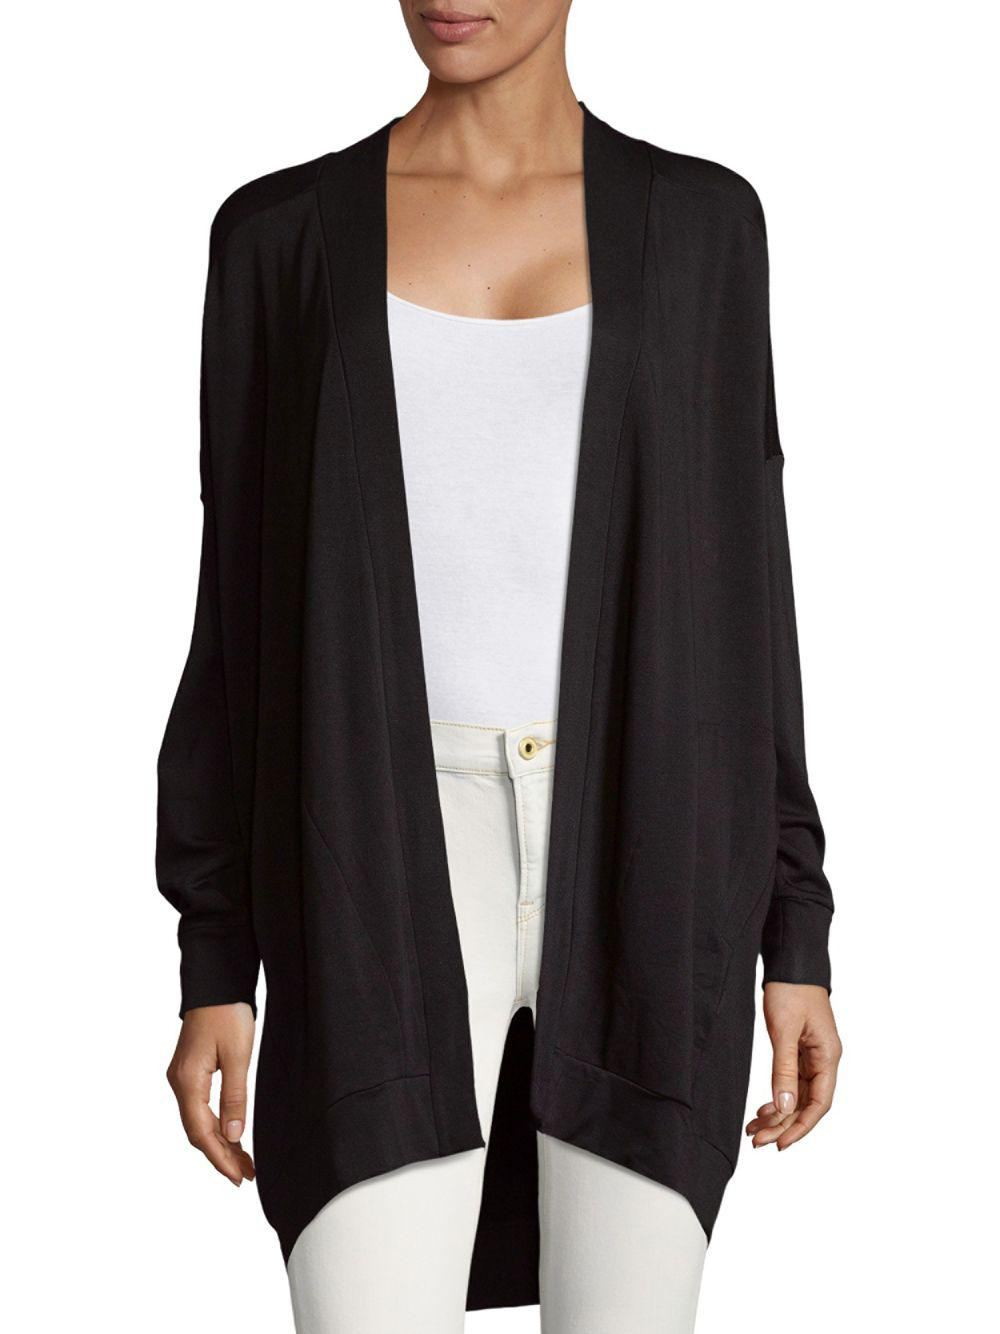 Saks fifth avenue Open Fleece Cardigan in Black | Lyst